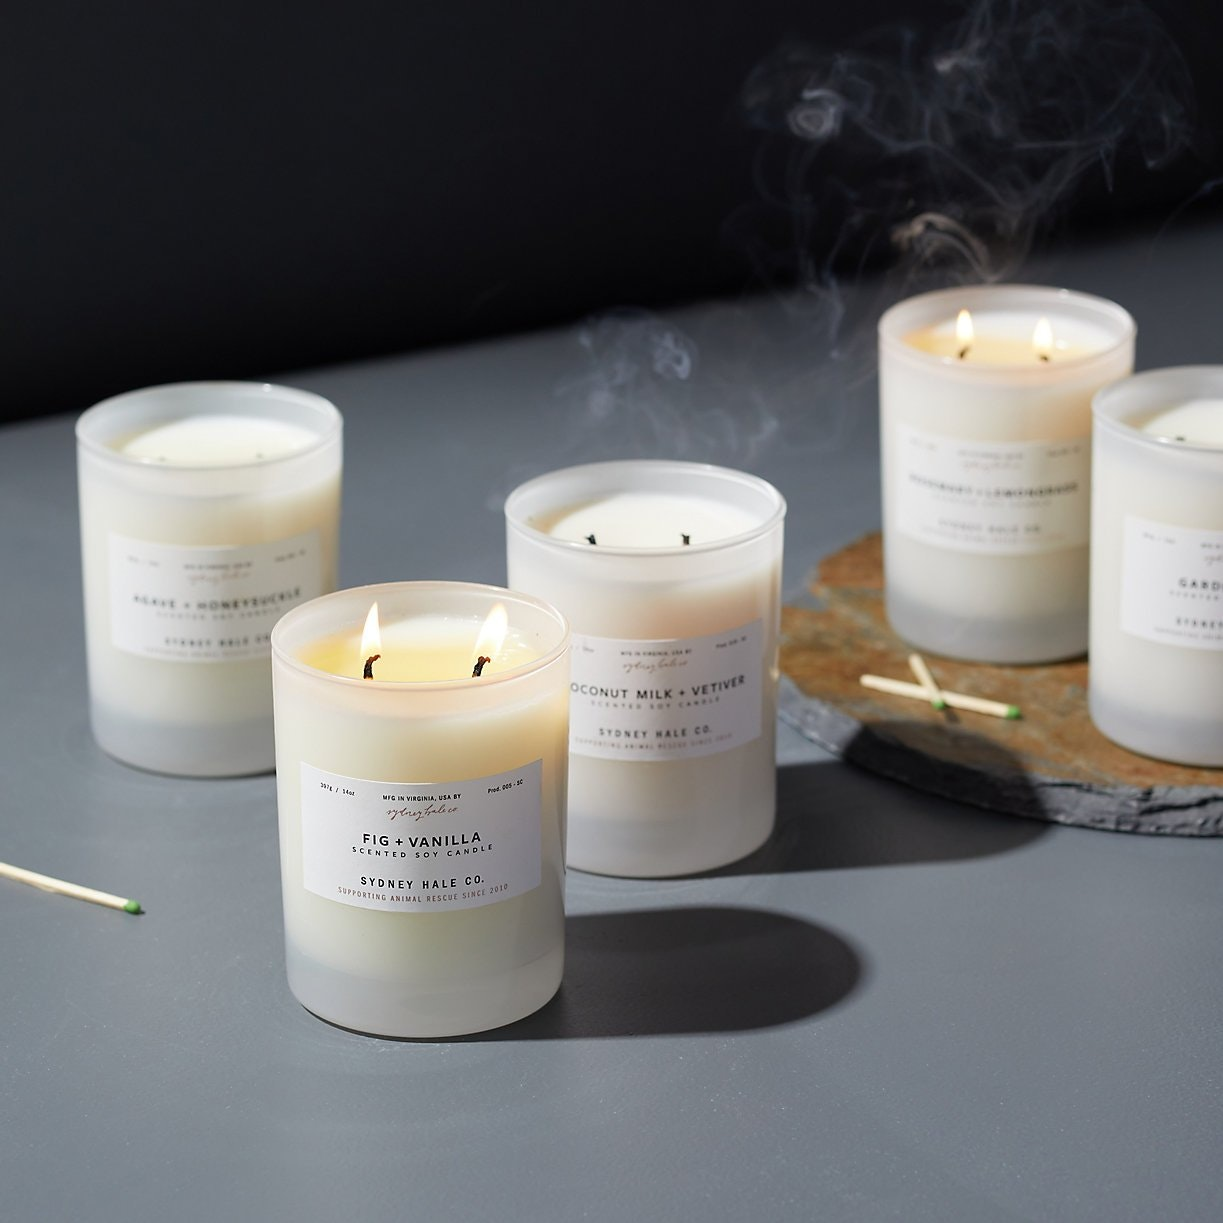 Sydney Hale Soy Candles